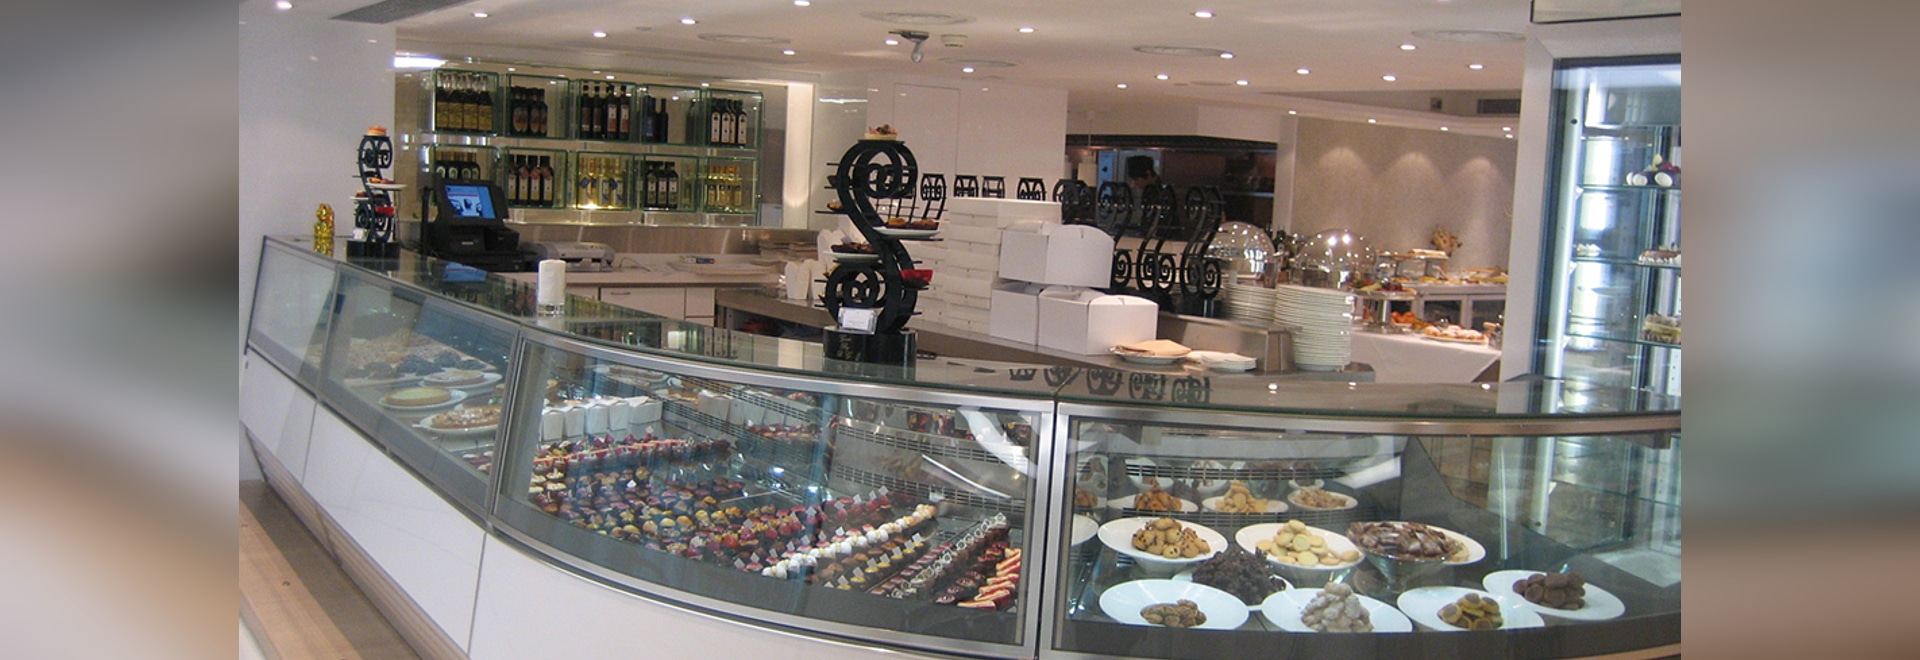 Pastry shop Gusto